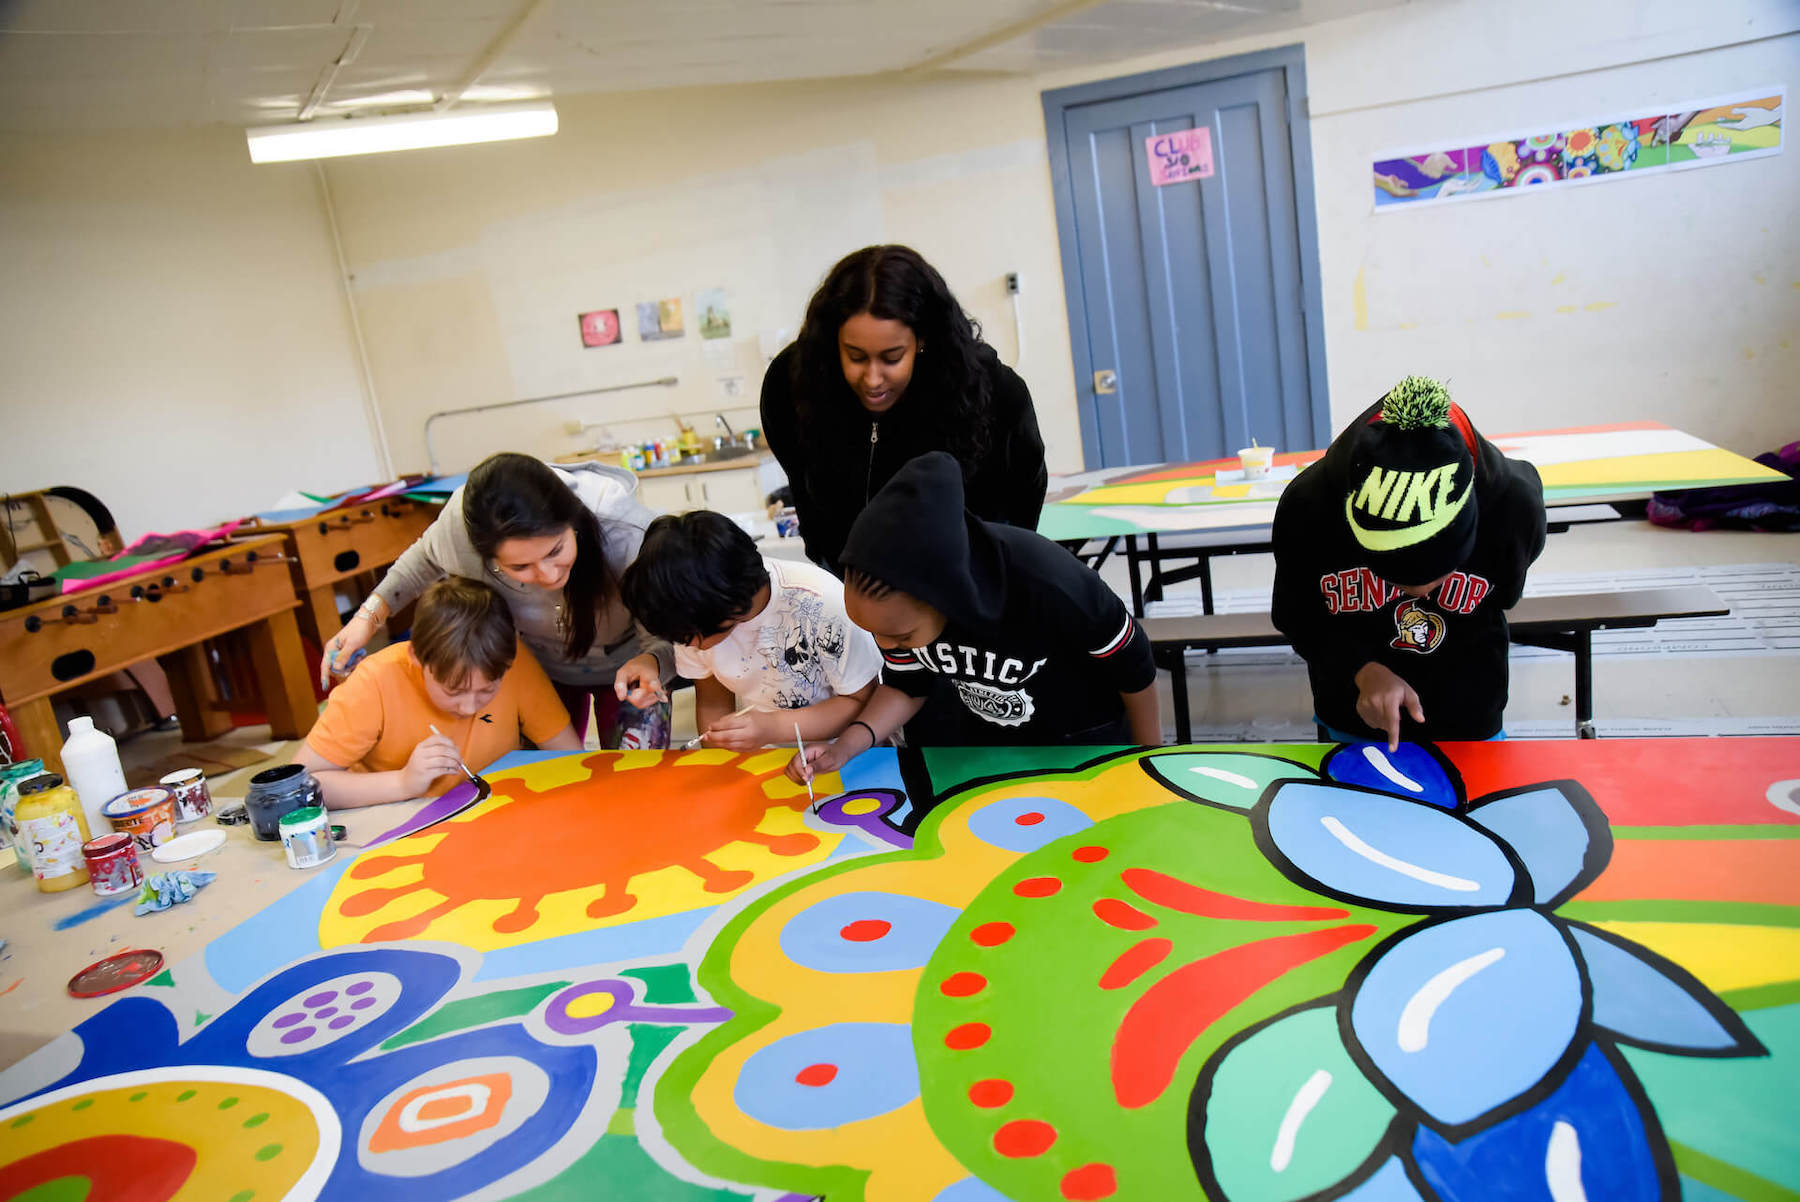 Community-engaged artist Claudia Salguero (background left) works on a mural with participants of MASC's Awesome Arts program in Ottawa. (Photo: Micheline Shoebridge)